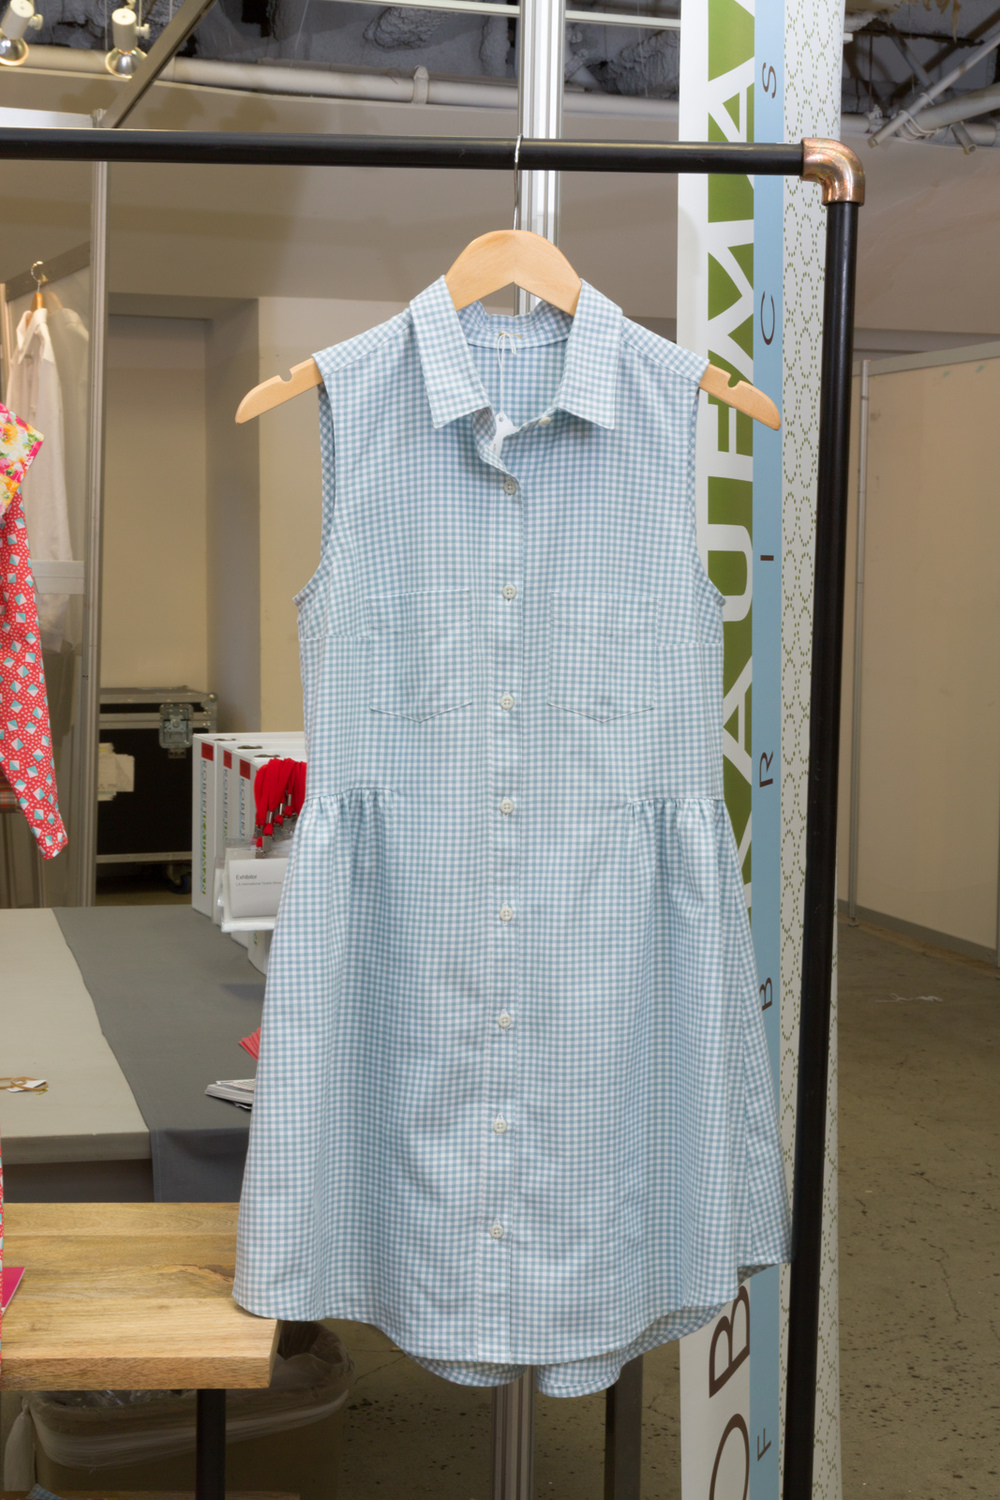 Alder Shirtdress   by   Grainline Studio,   made by   Elinor Nissley  , featuring   Carolina Gingham